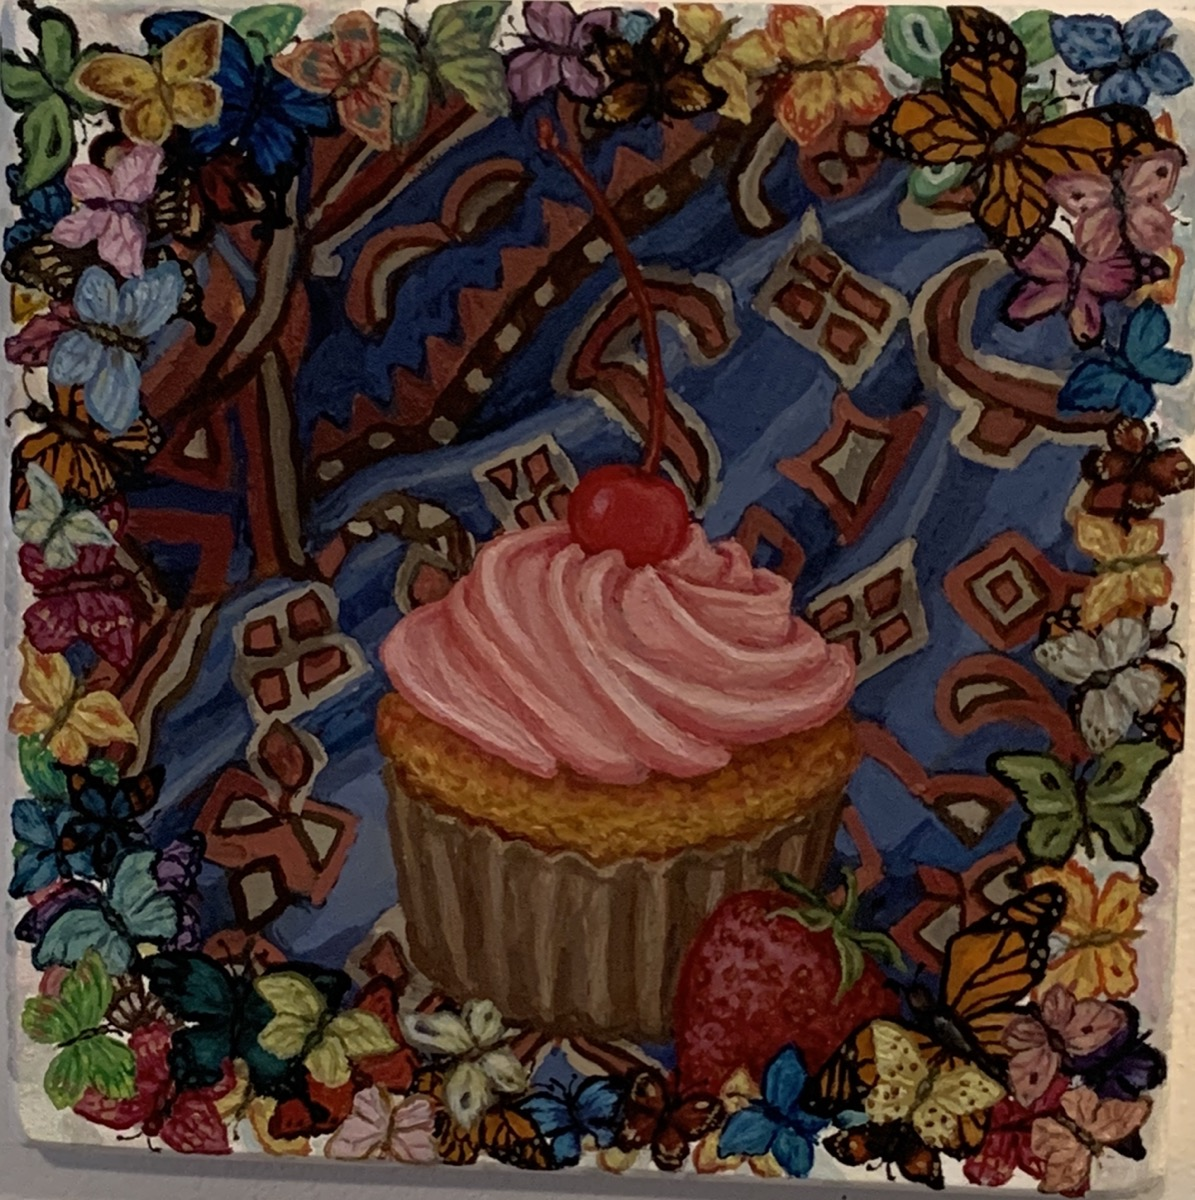 """Cupcake On A Carpet with Butterflies 2019 Oil on wood 8""""x8"""""""